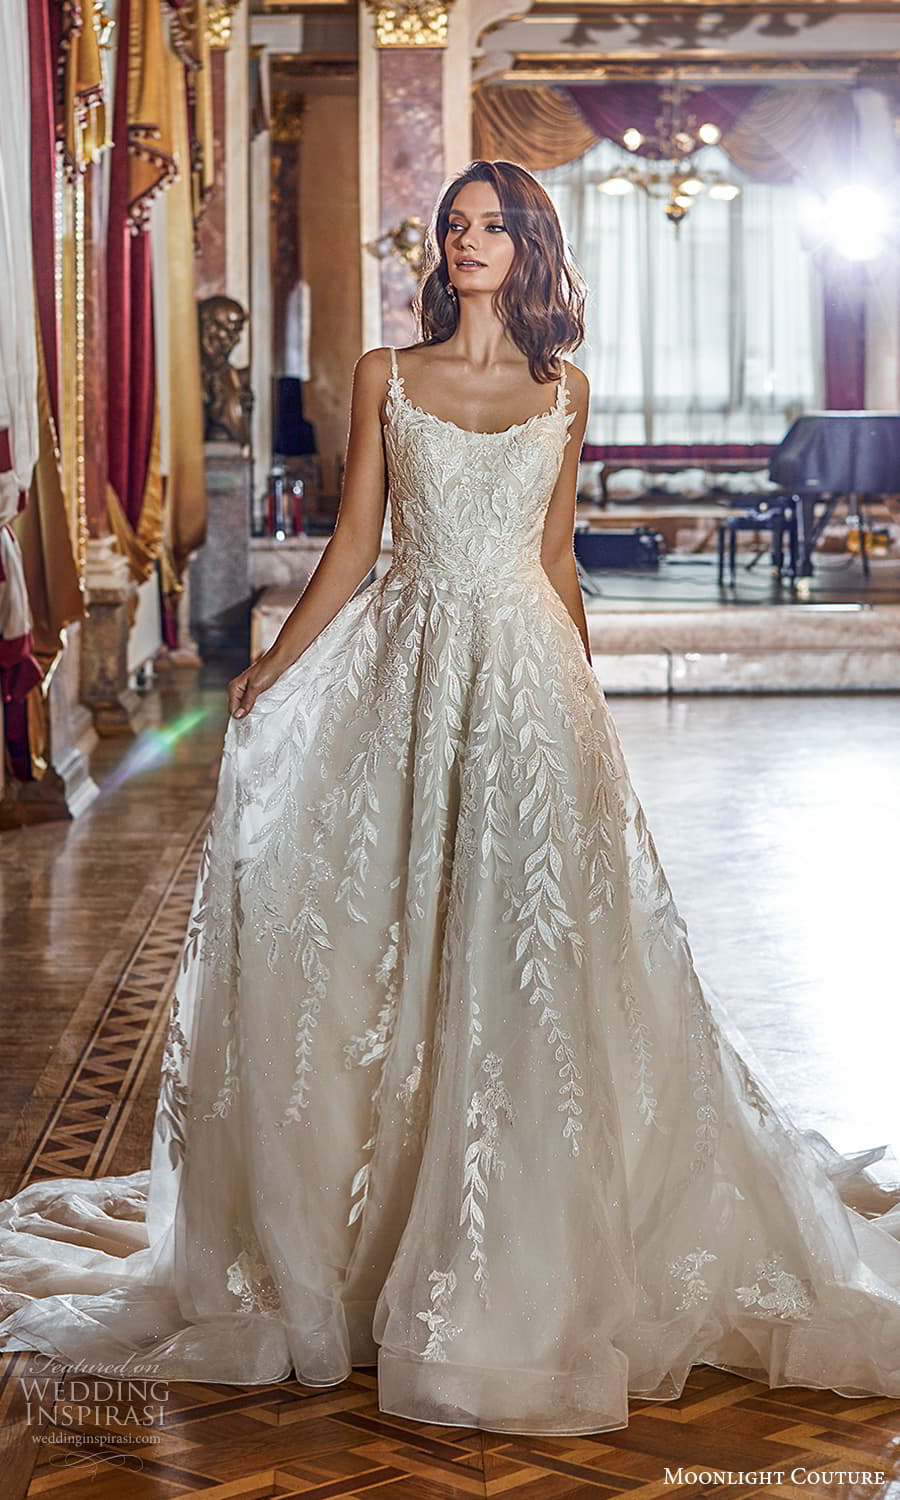 moonlight couture fall 2021 bridal sleeveless straps scoop neckline fully embellished a line ball gown wedding dress chapel train (7) mv